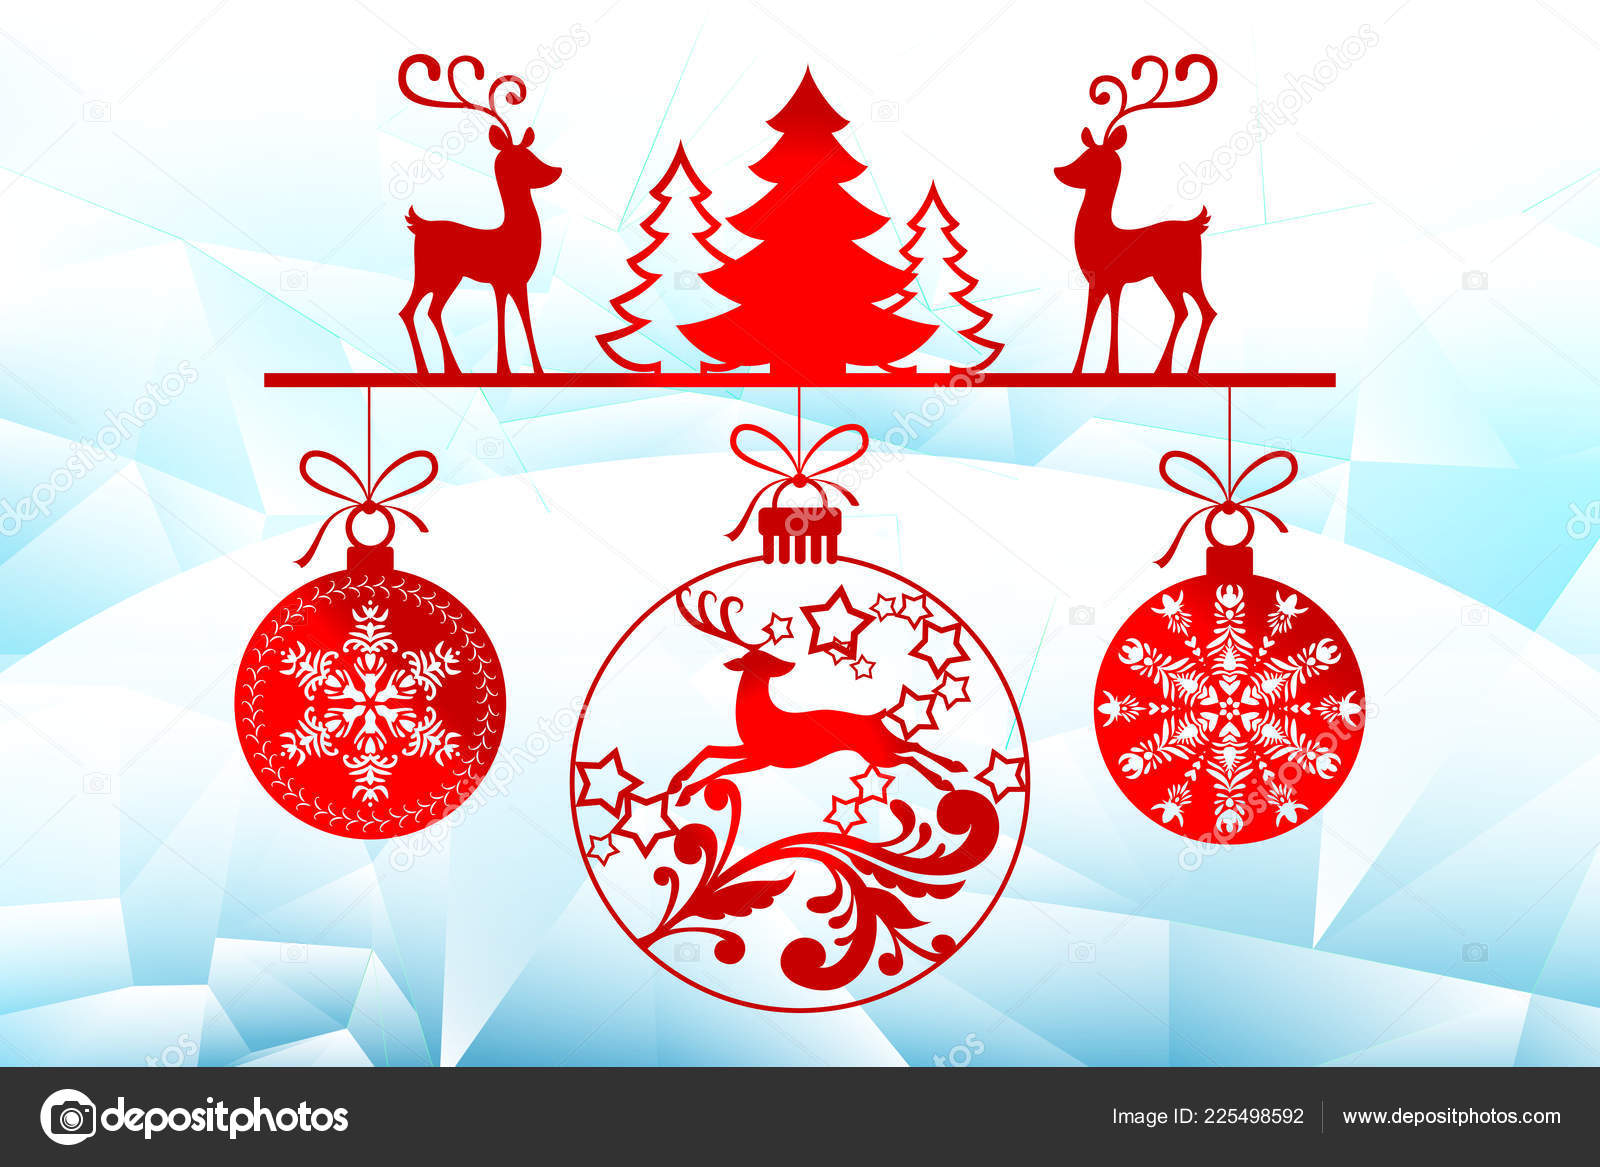 New Year, Christmas laser cutting templates. Holiday decorations in 2019 on an icy background deer, winter trees, Christmas balls. Decor for decoration of ...